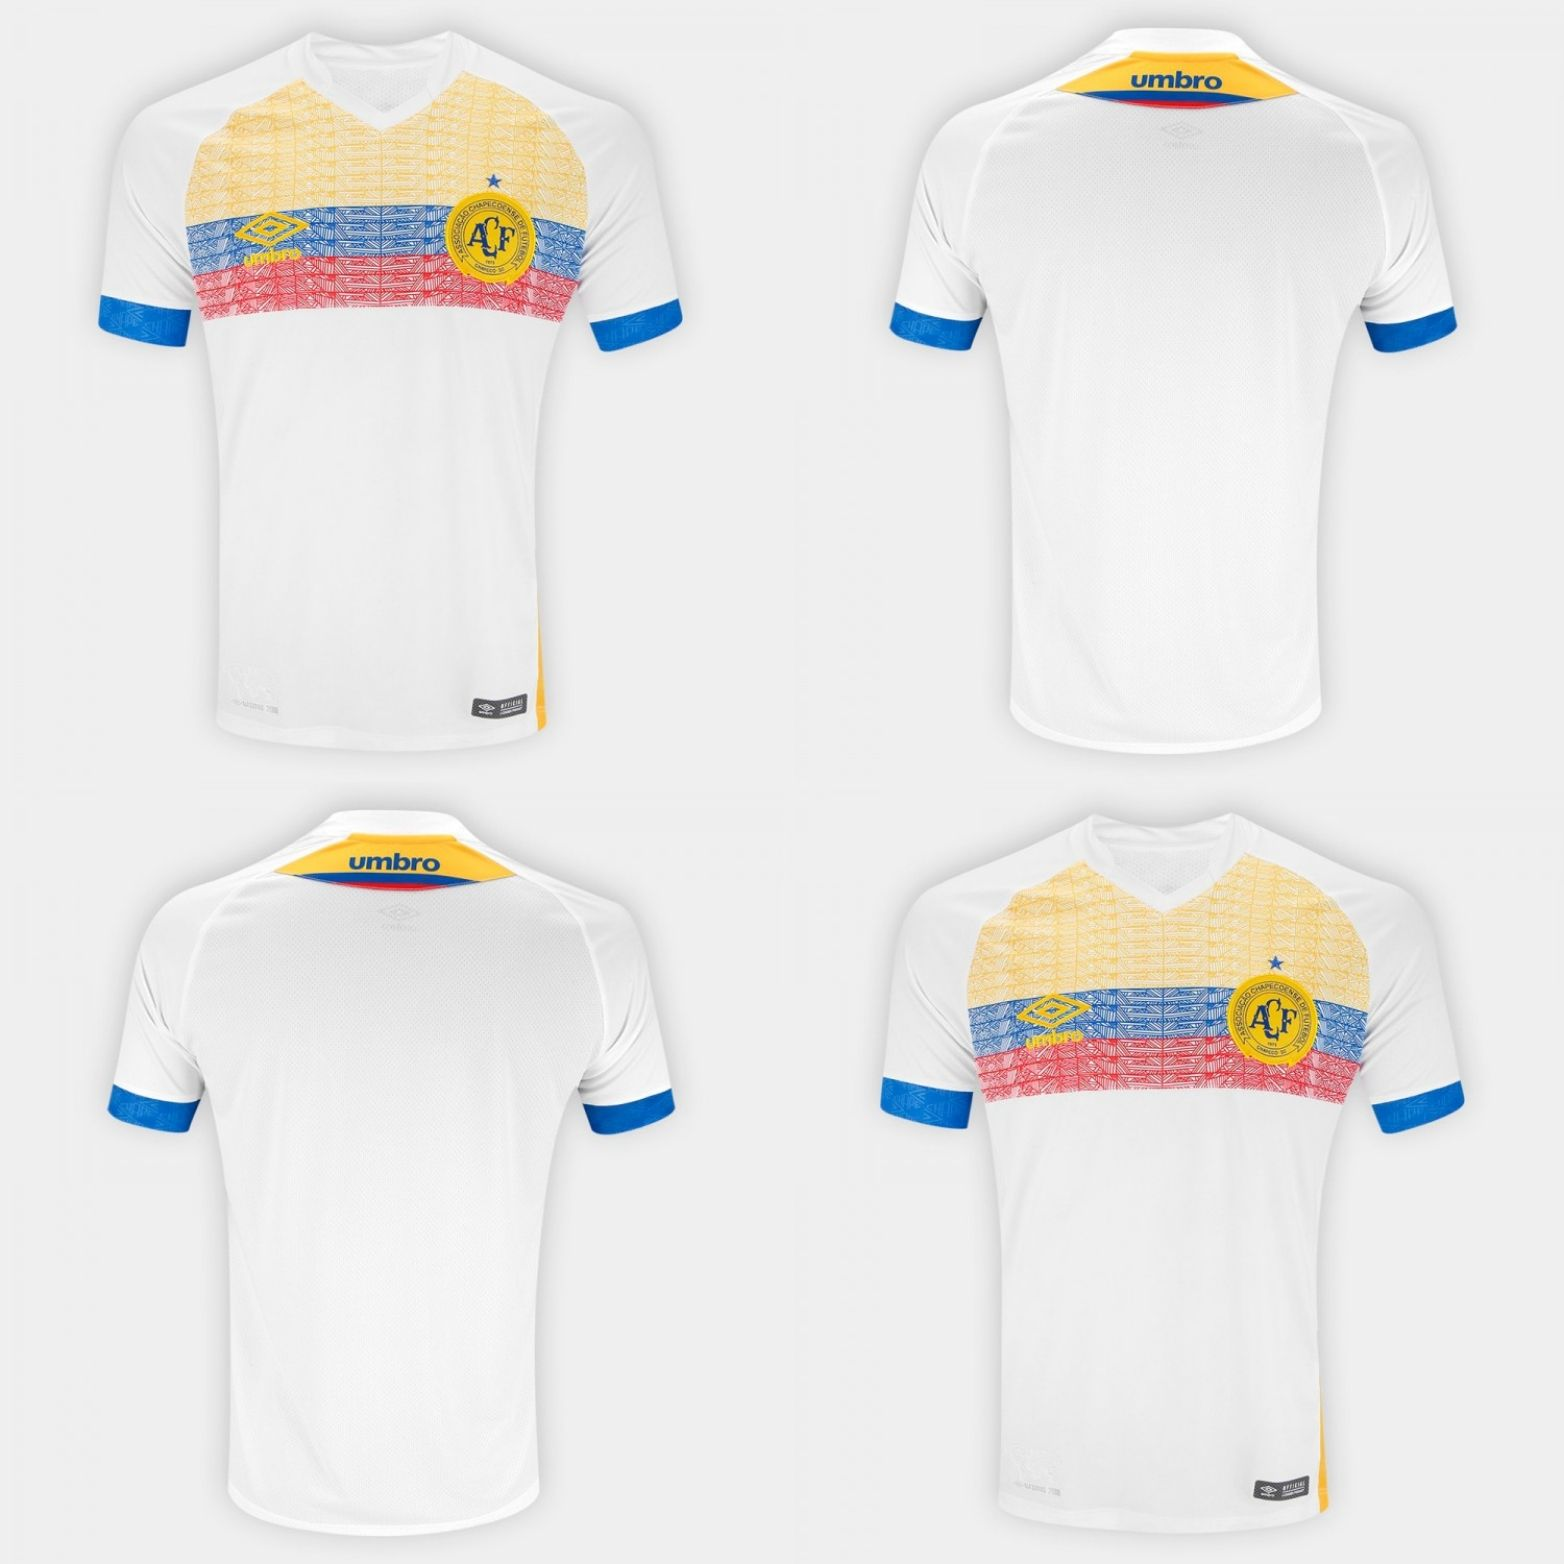 1b55213cc Umbro Chape Nations 2018 T-Shirt (Casmiseta) designed in memory of  Chapecoense and in honor of Colombia. Que el futbol nos une.  Chape   Chapeco  Colombia La ...